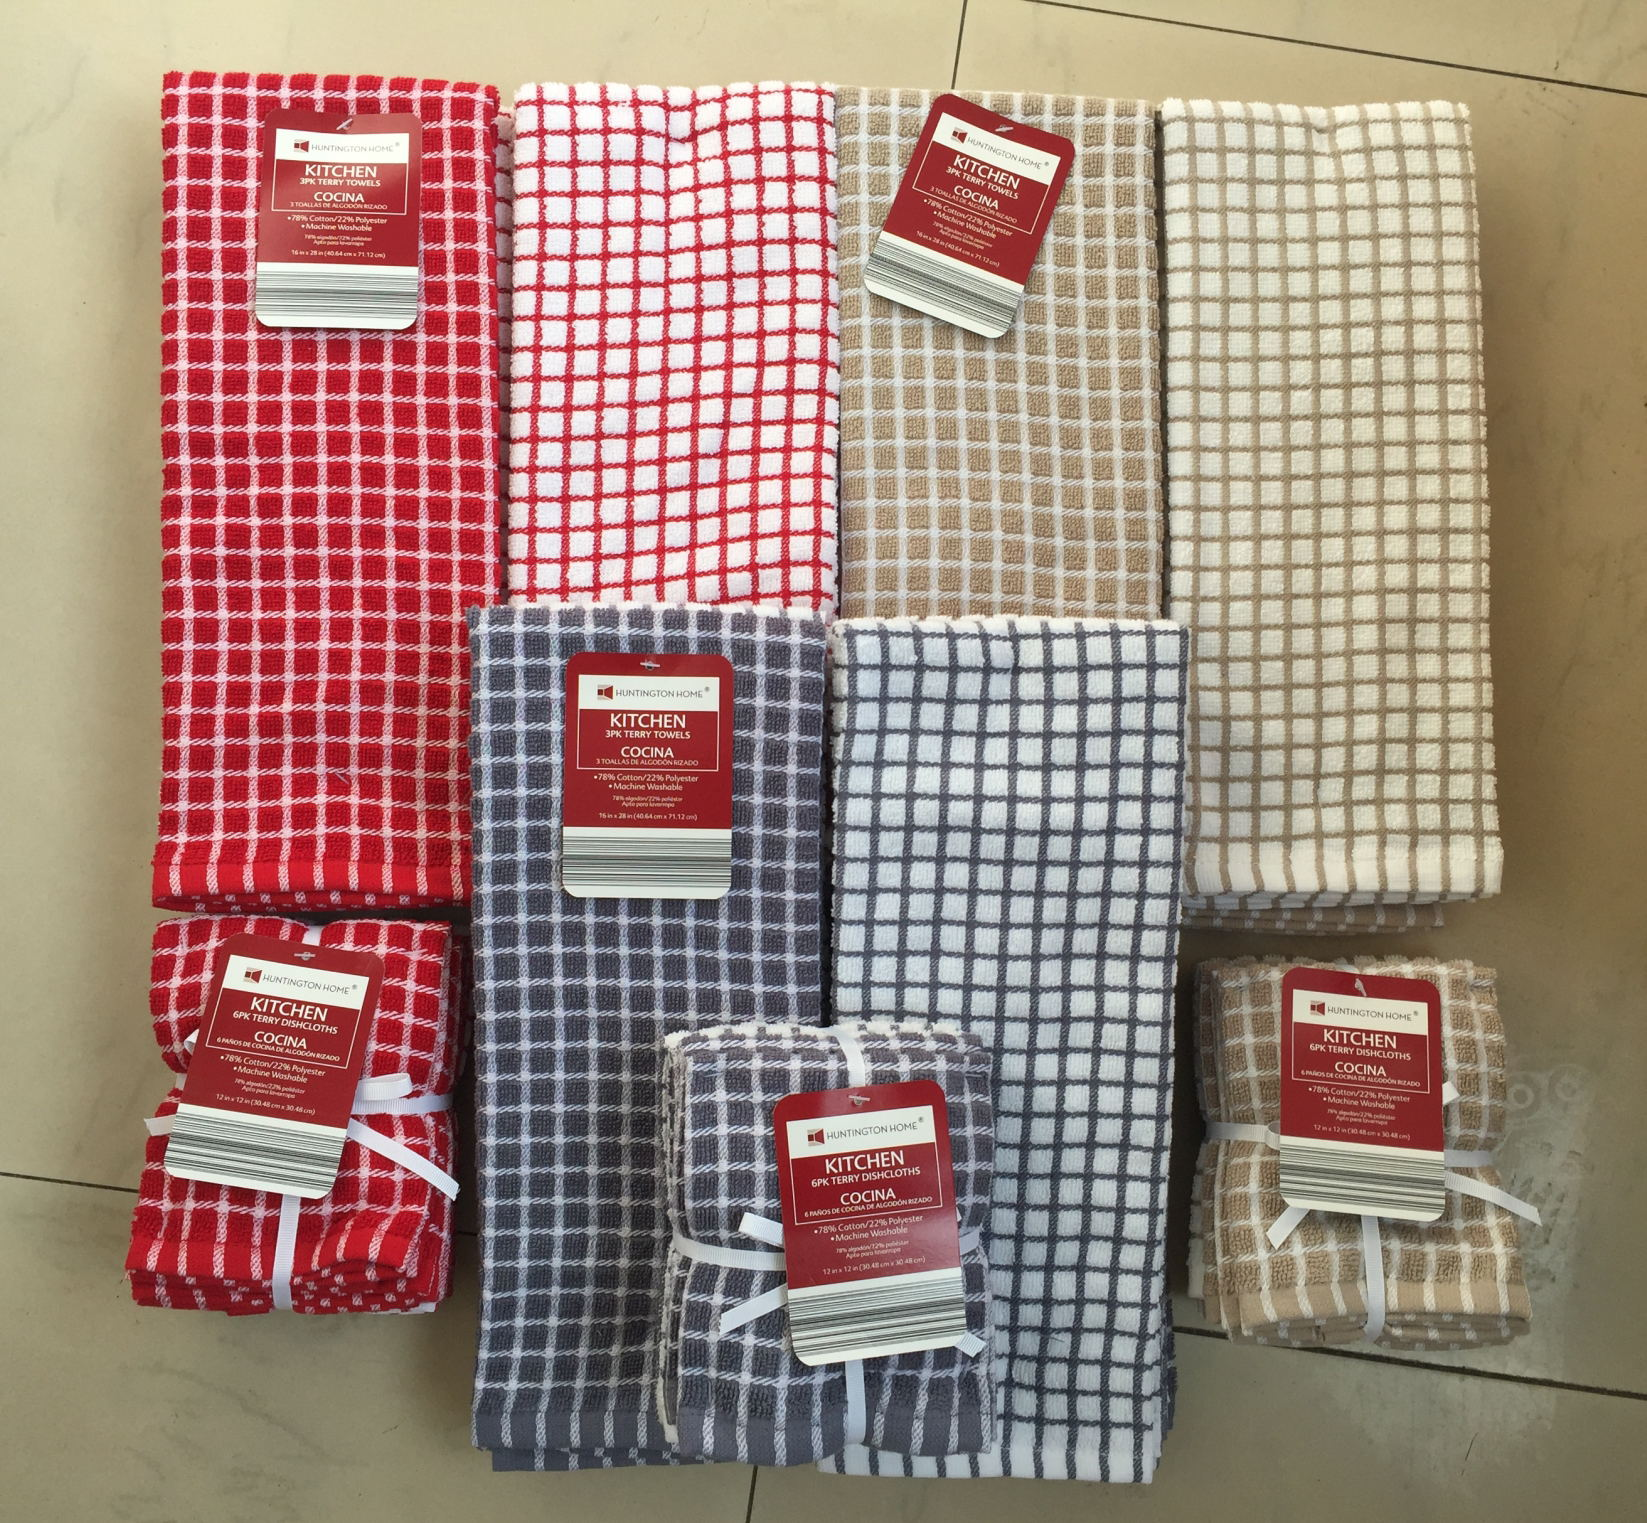 9pk Yarn Dye Plaid Kitchen Towel 16 28 100g3pk 12 32 5g 6pk Minimum Order 3000set Color This Set Is A Great Value Includes Nine Matching Dish